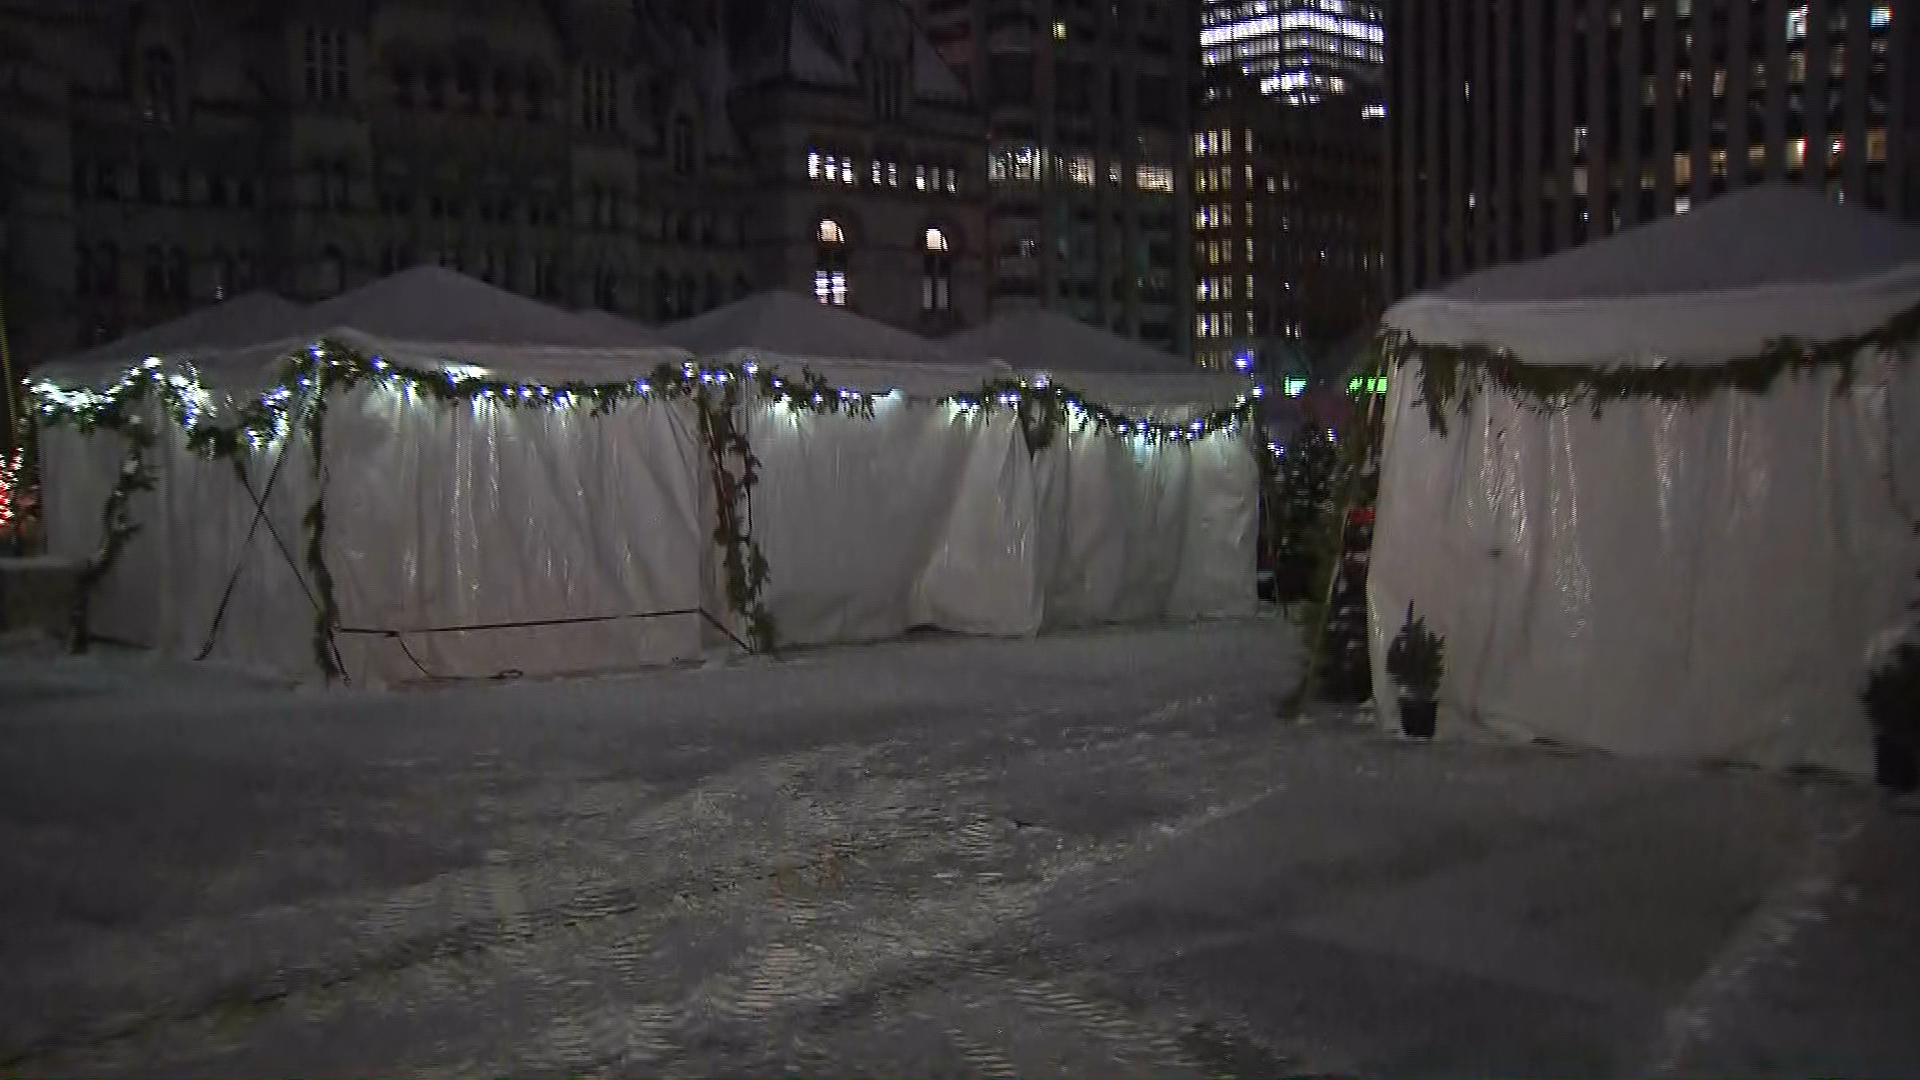 The Holiday Fair in Nathan Phillips Square is closed on Dec. 13, 2017, due to the cold weather. CITYNEWS